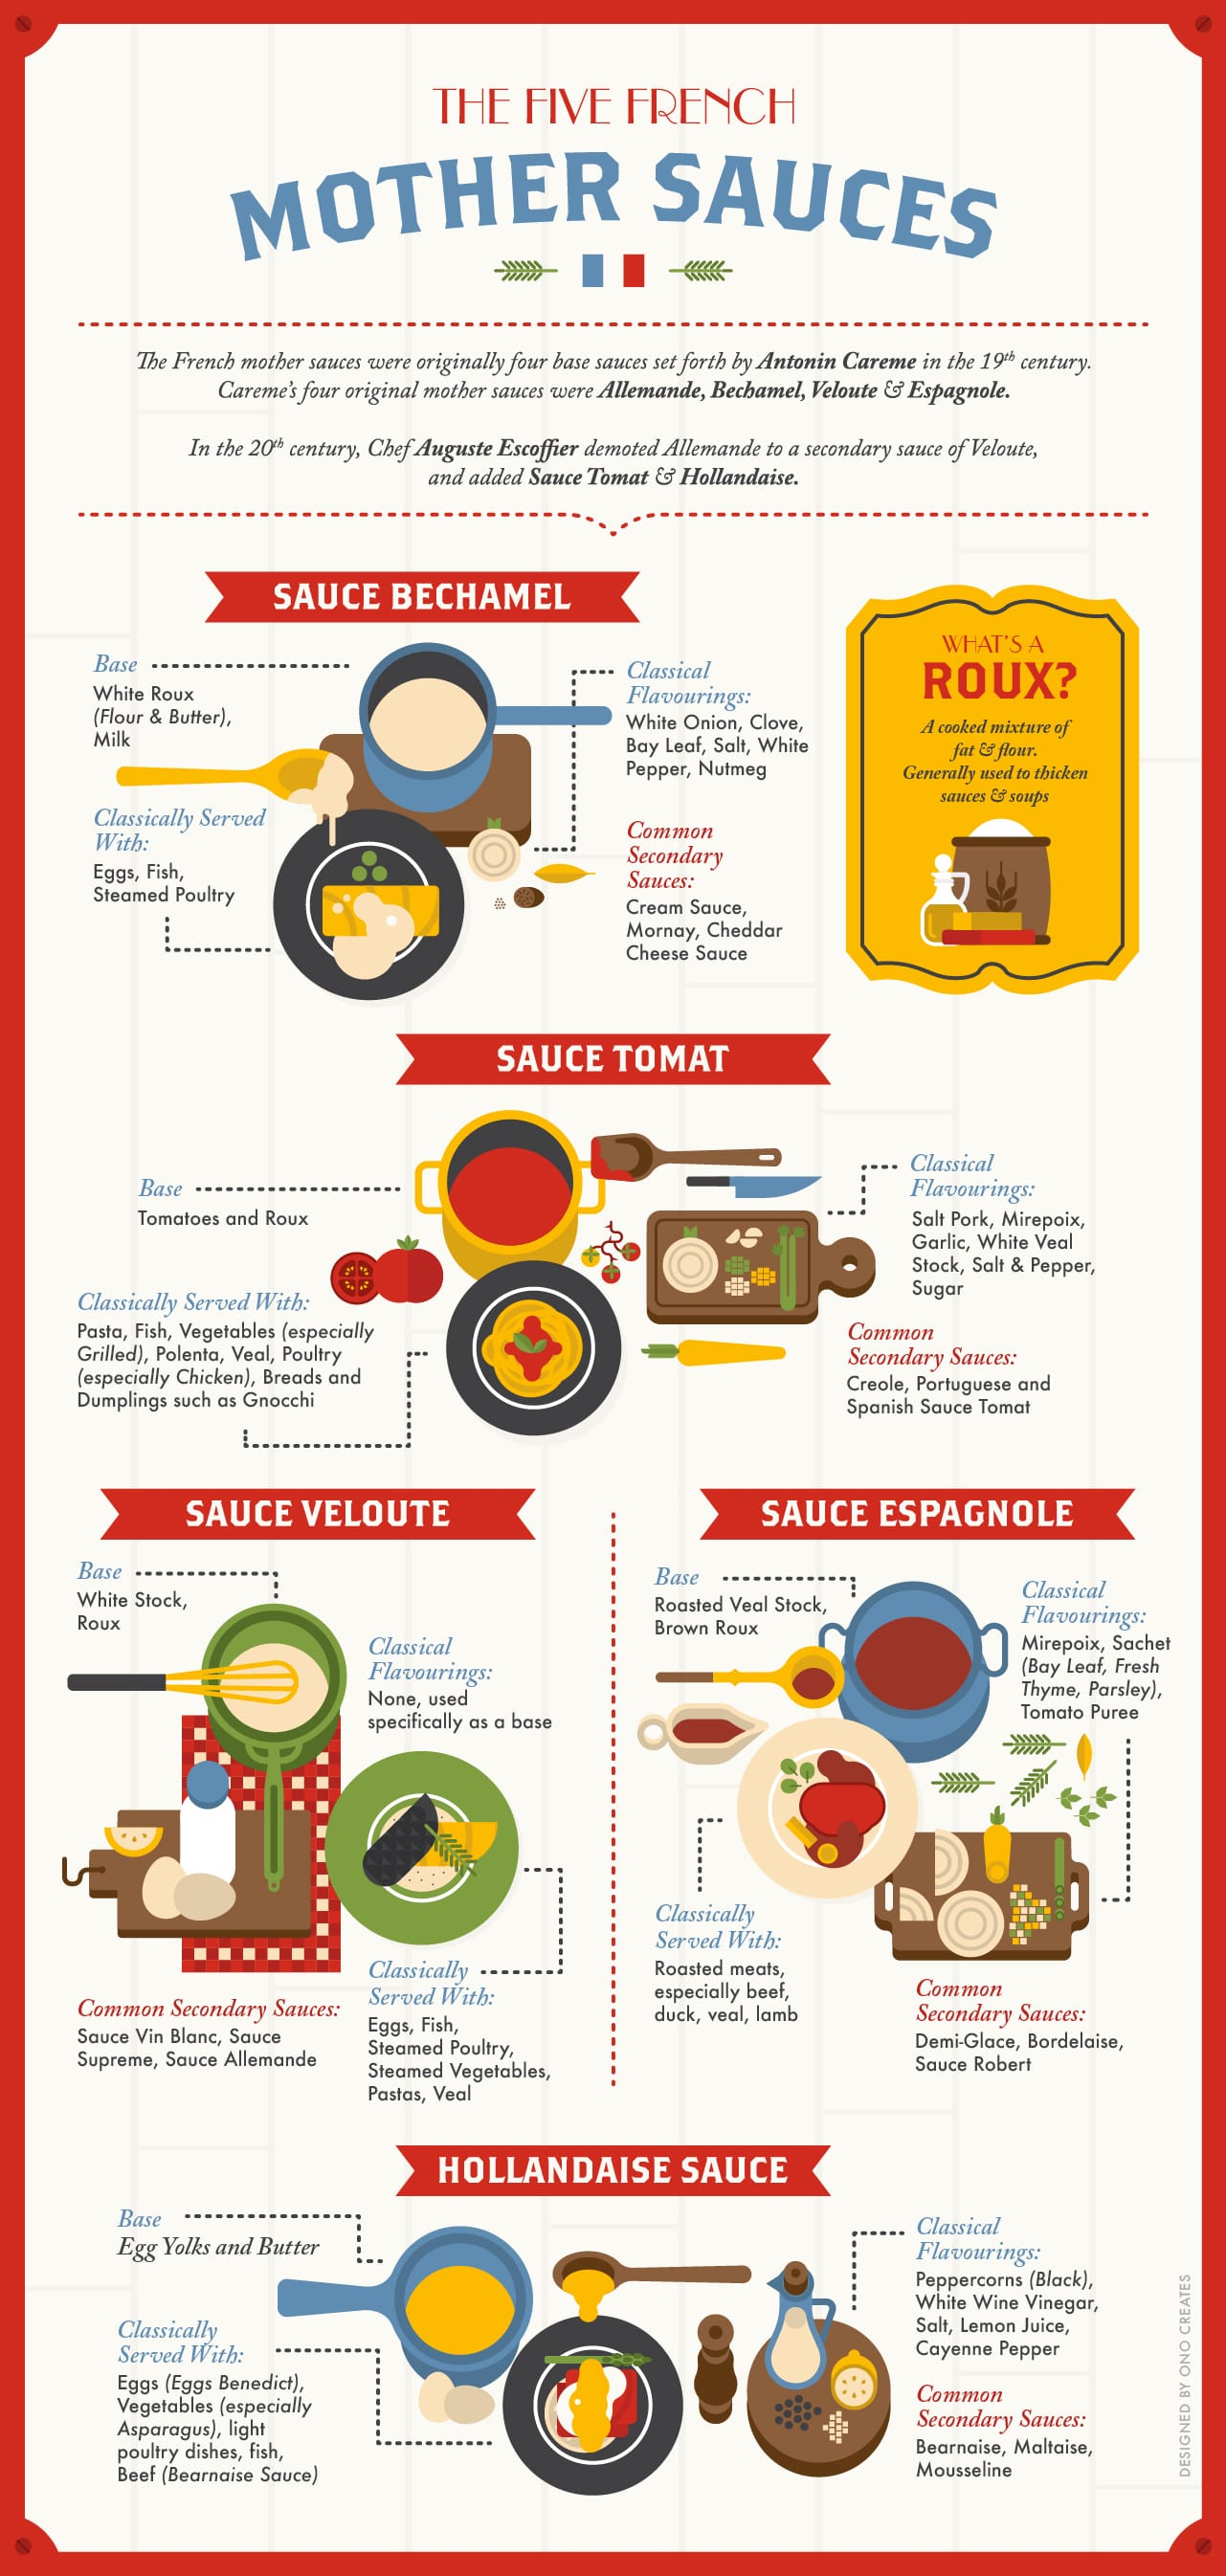 Illustration by Ono Creates for Michelin Guide